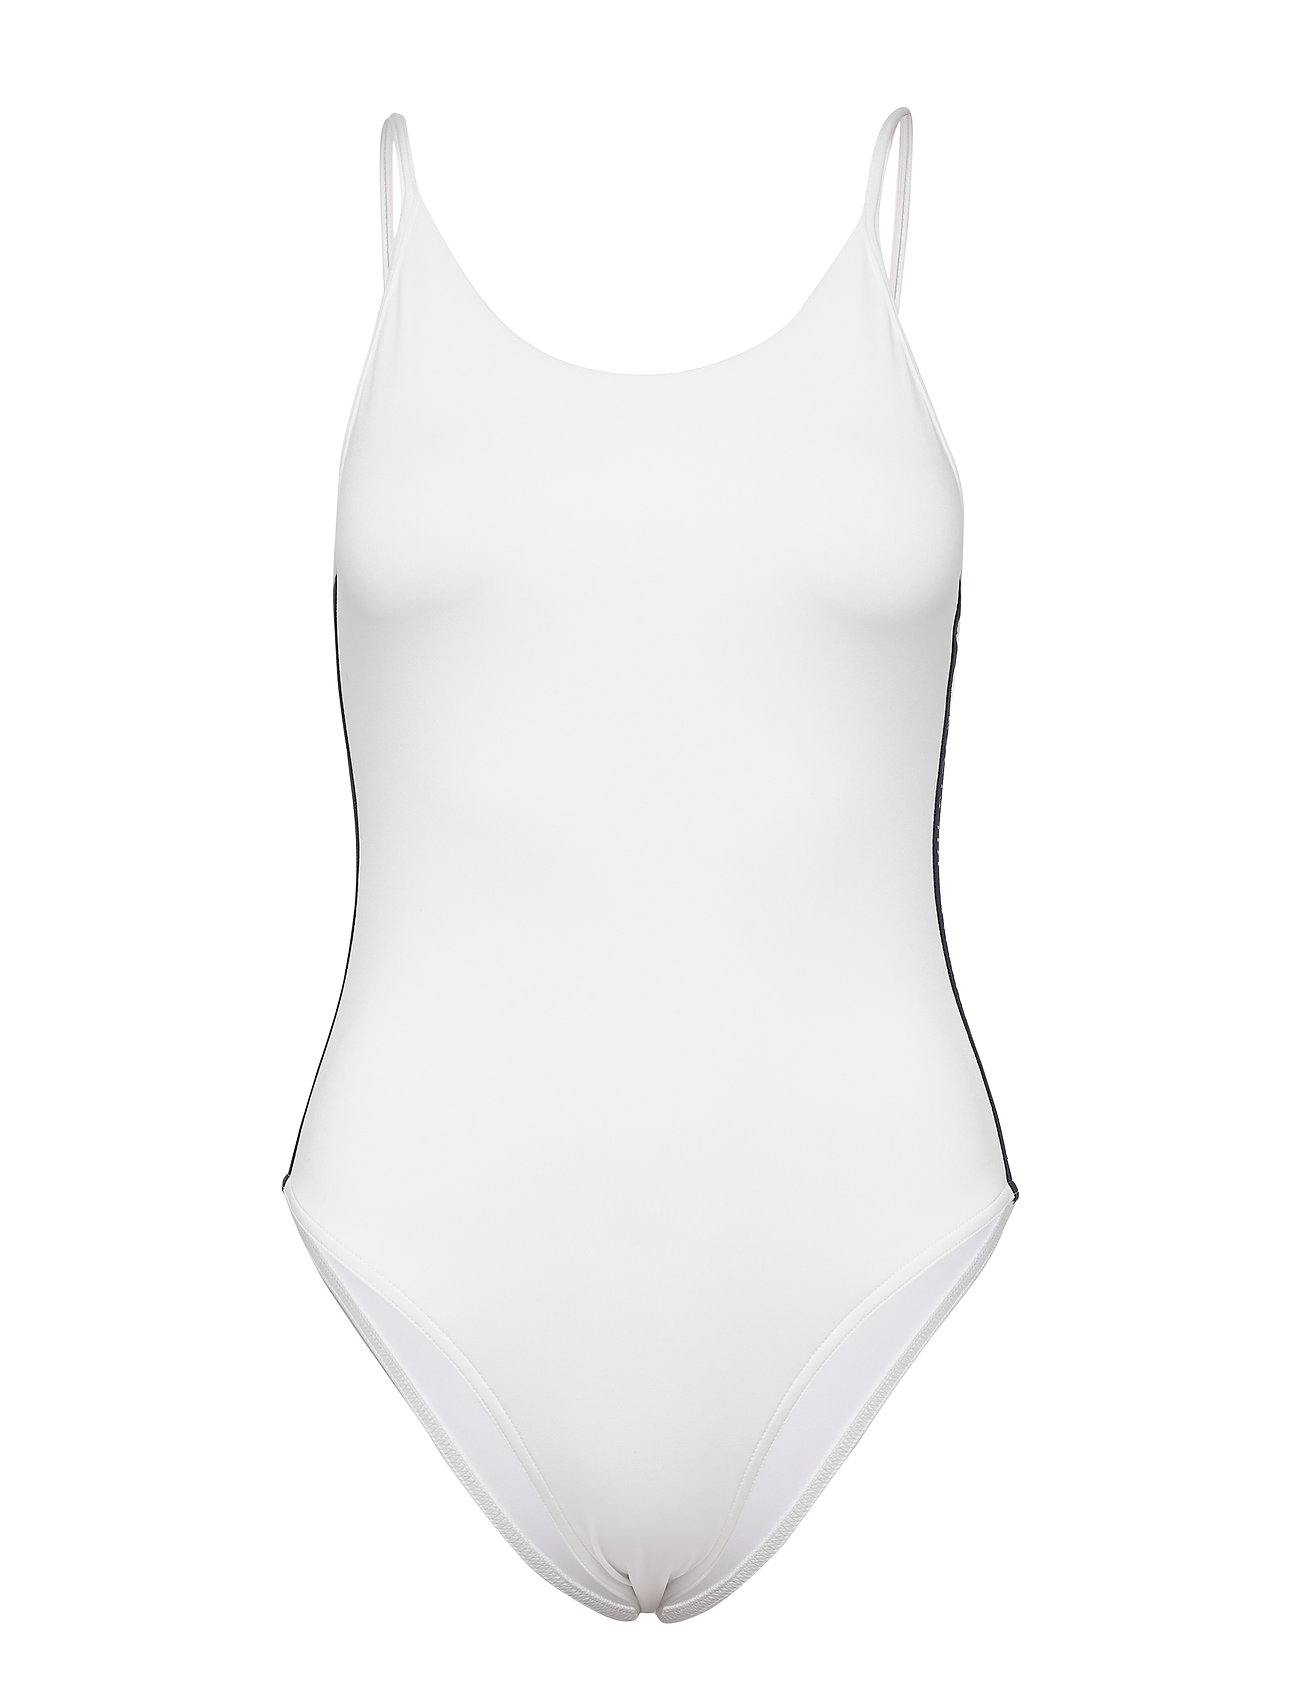 Tommy Hilfiger CHEEKY ONE-PIECE - SNOW WHITE